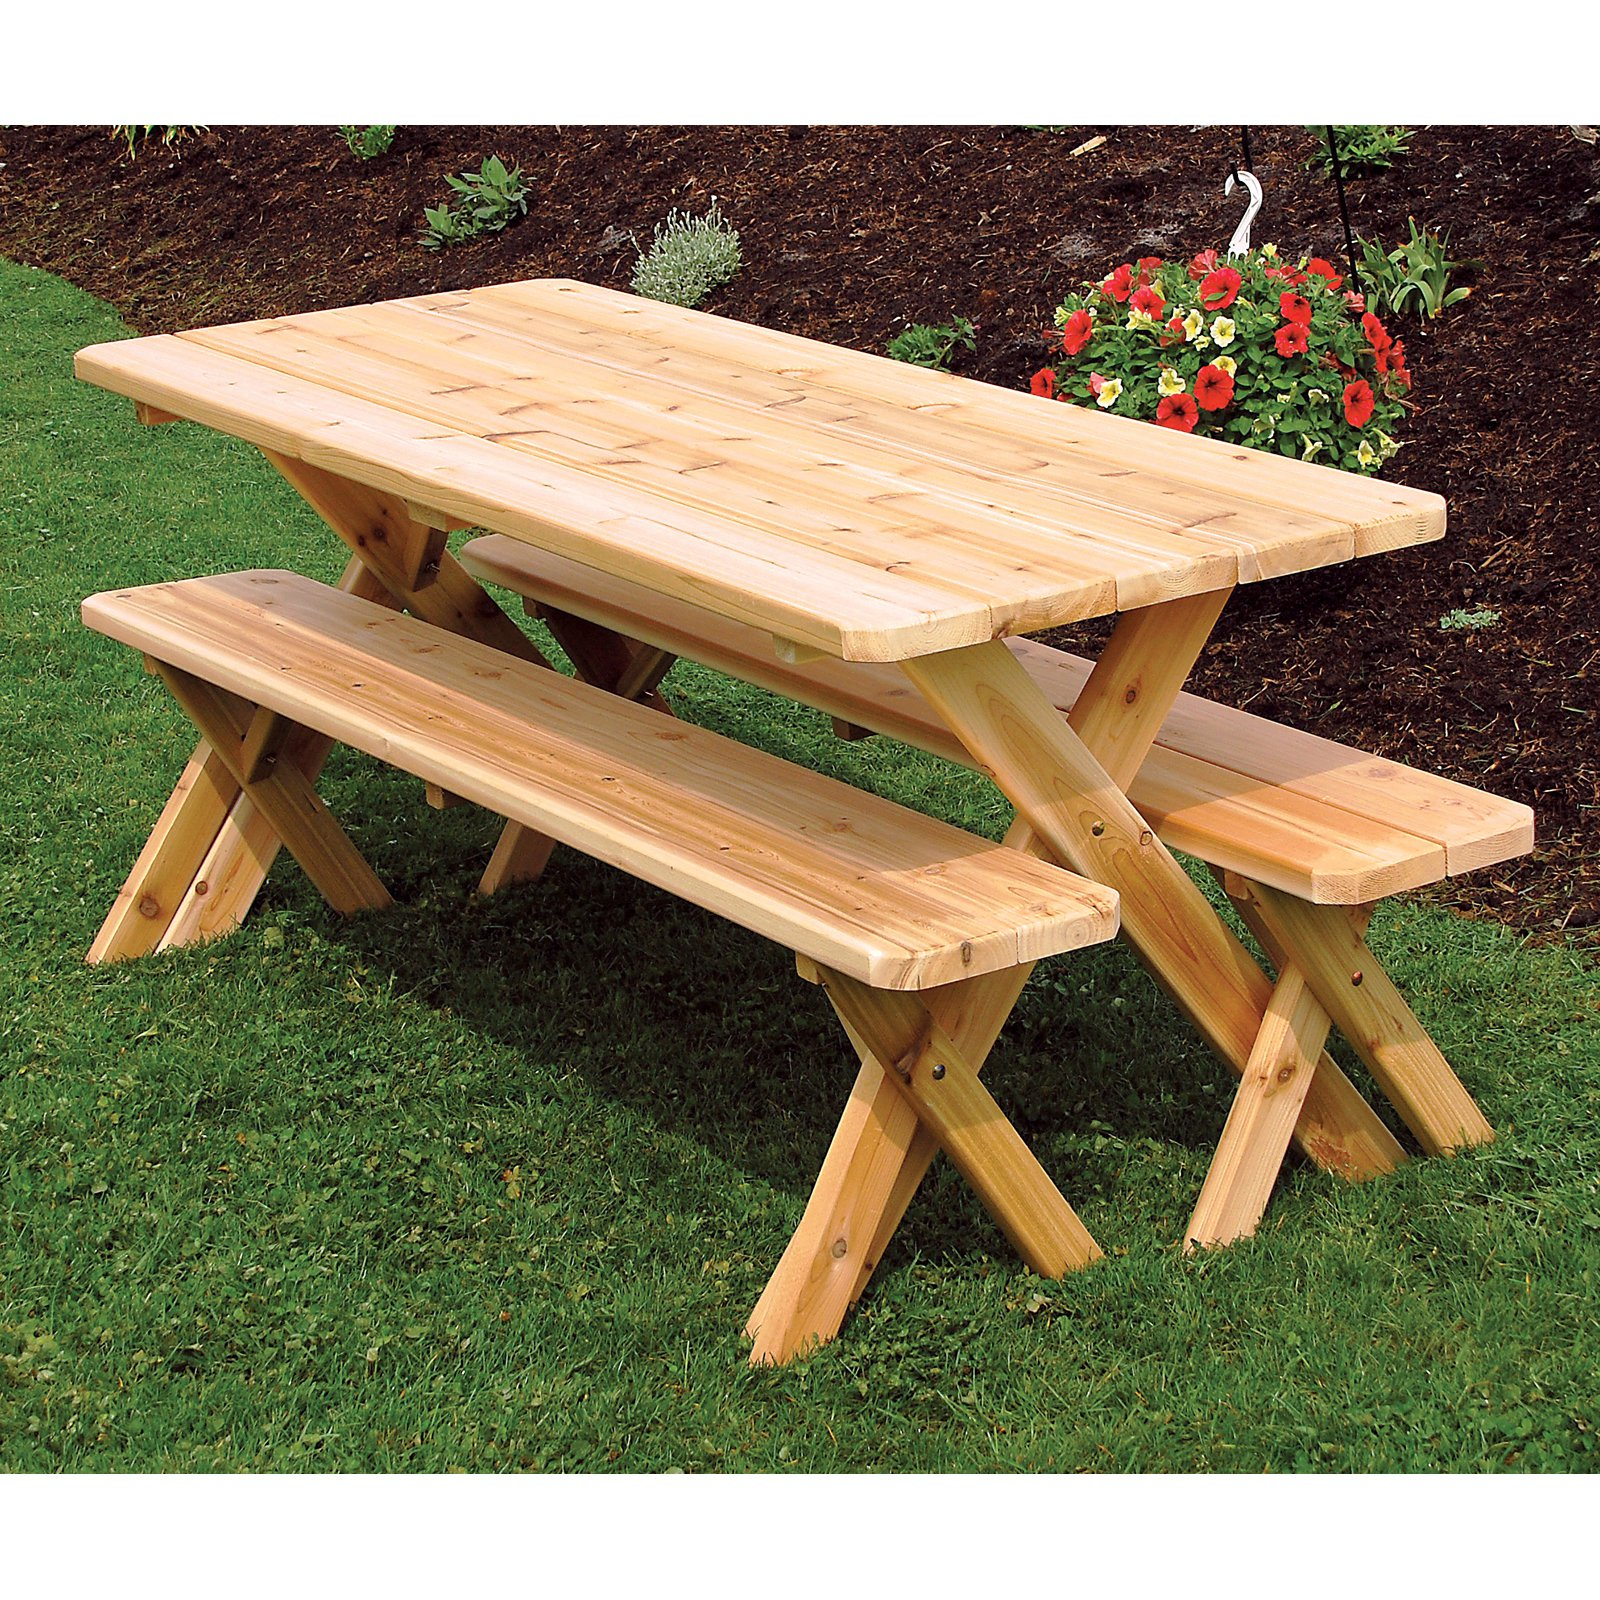 Elegant A U0026amp; L Furniture Western Red Cedar Crossleg Picnic Table With 2 Benches    Walmart.com